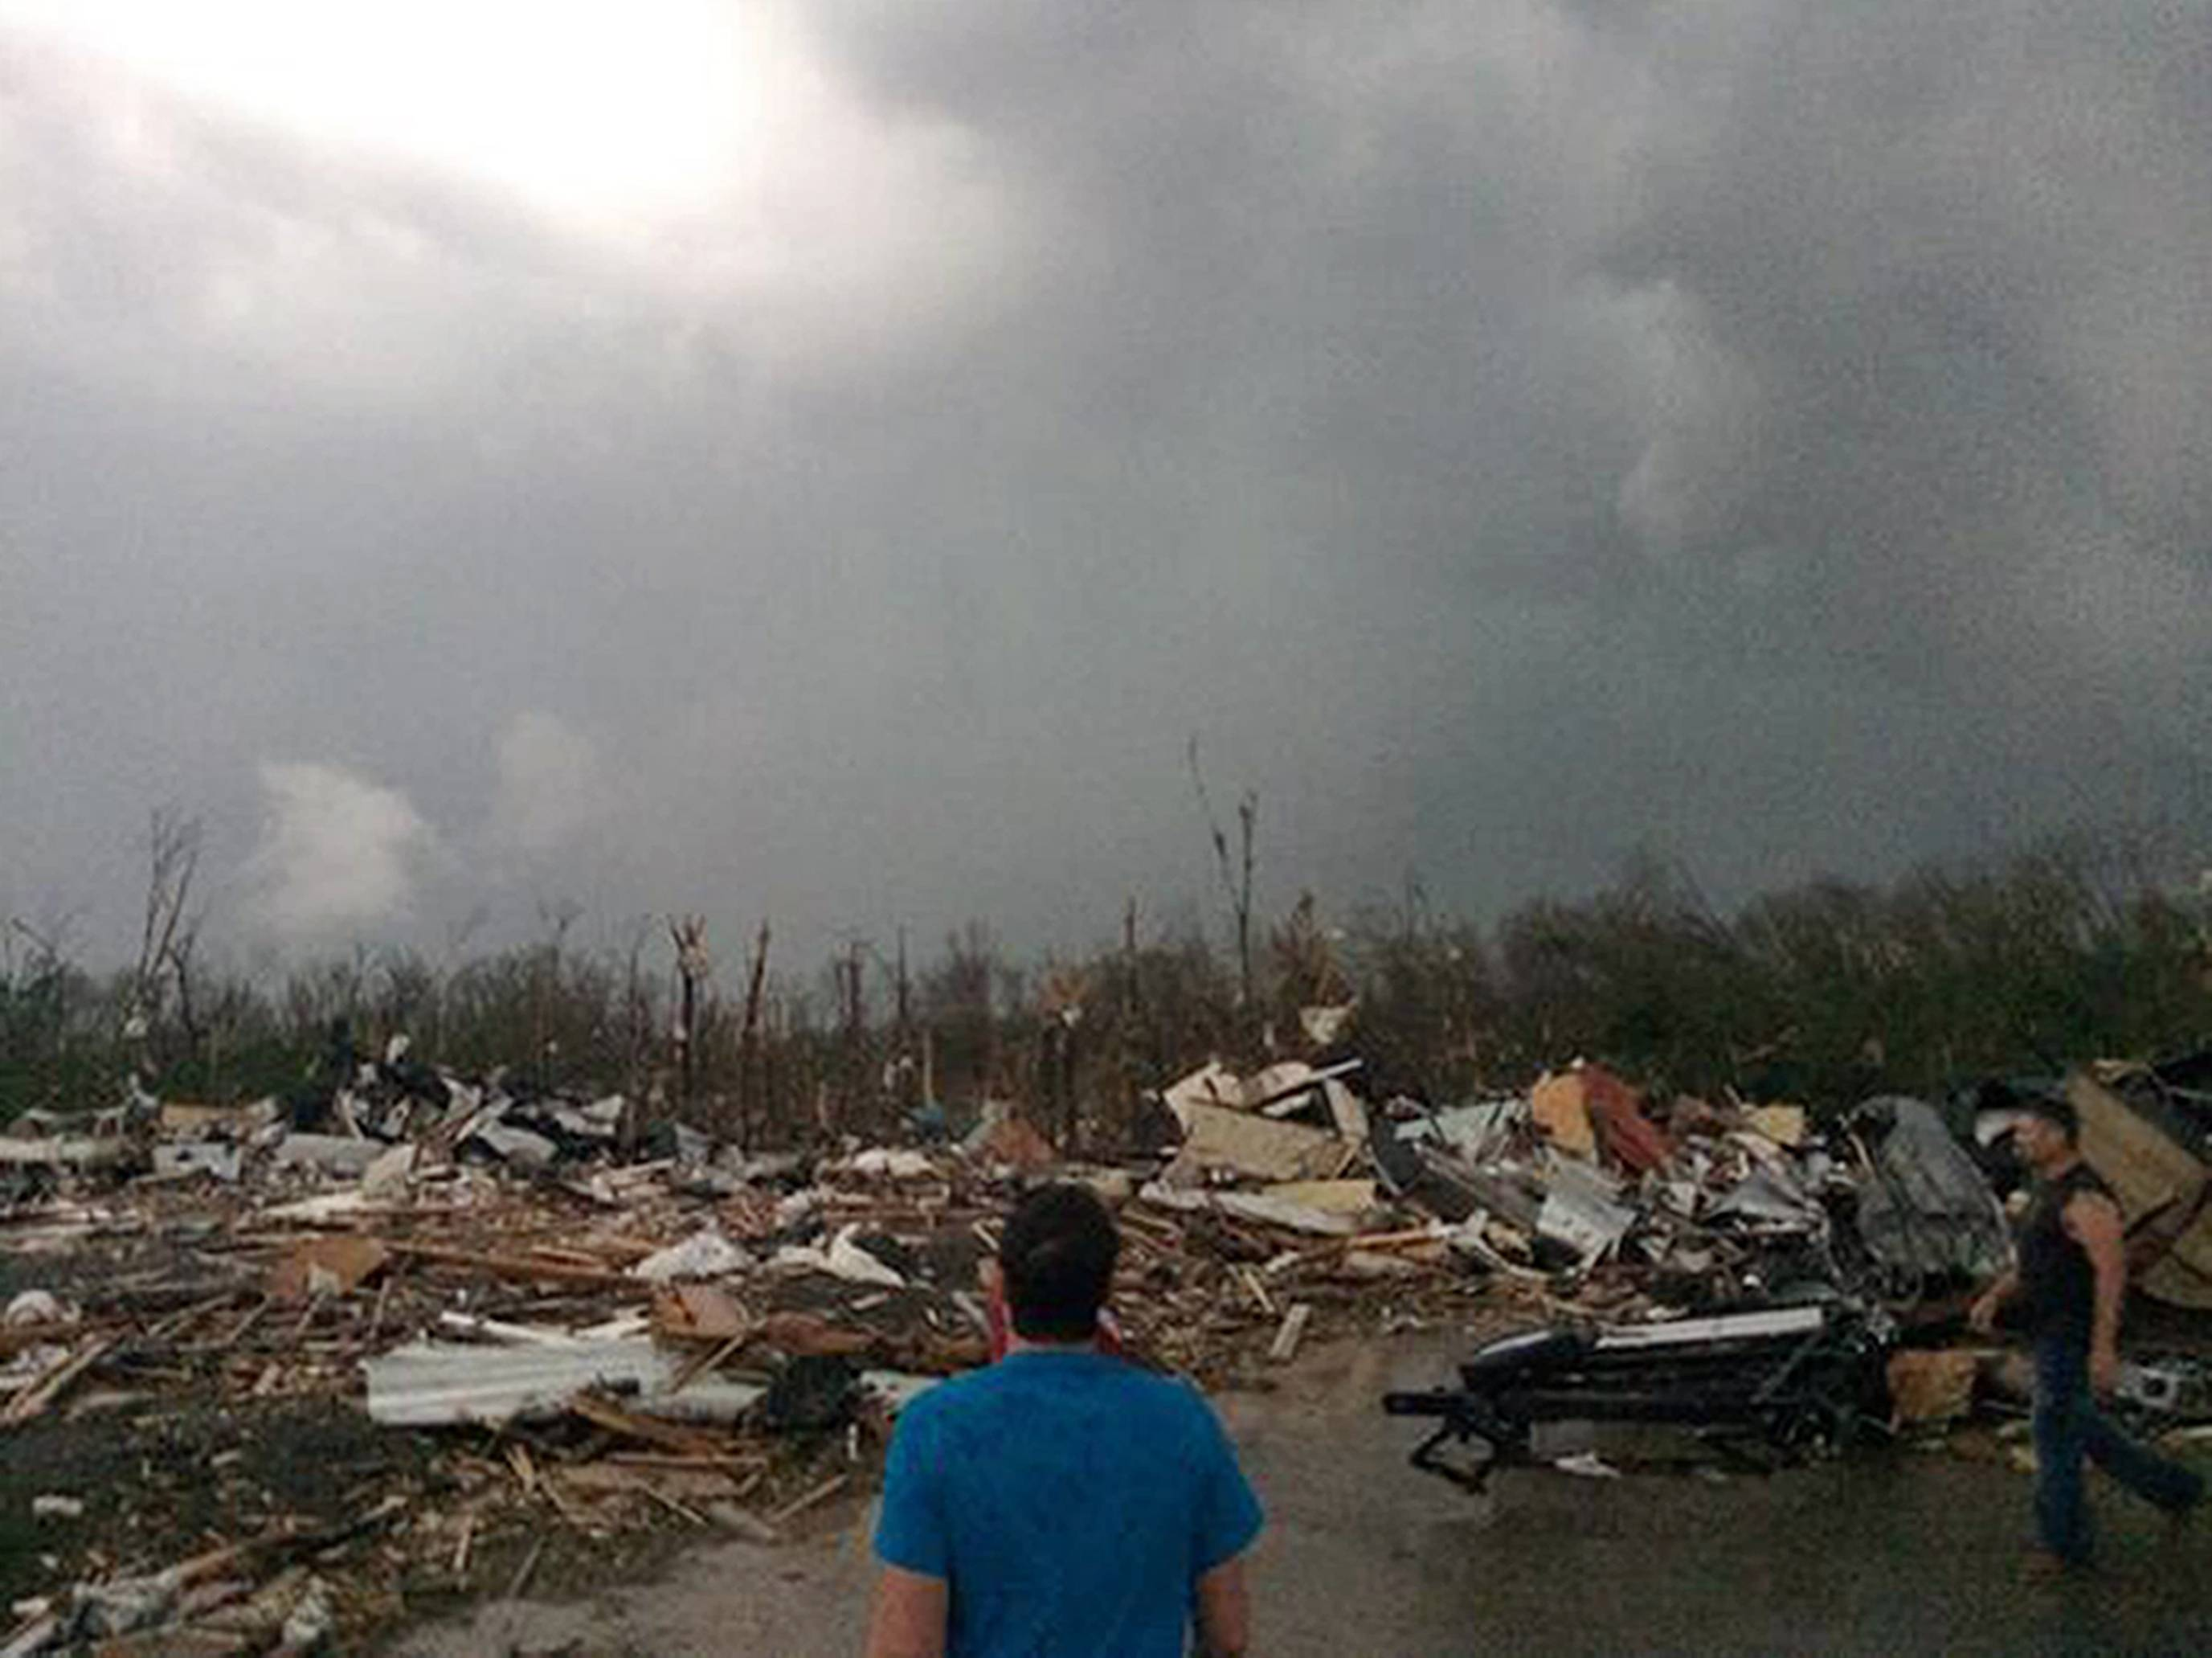 Tornado damage is seen Sunday in Mayflower, Ark. A powerful storm system rumbled through the central and southern United States, spawning several tornadoes, including one that killed two people in a small northeastern Oklahoma city and another that carved a path of destruction through several northern suburbs of Little Rock, Ark.